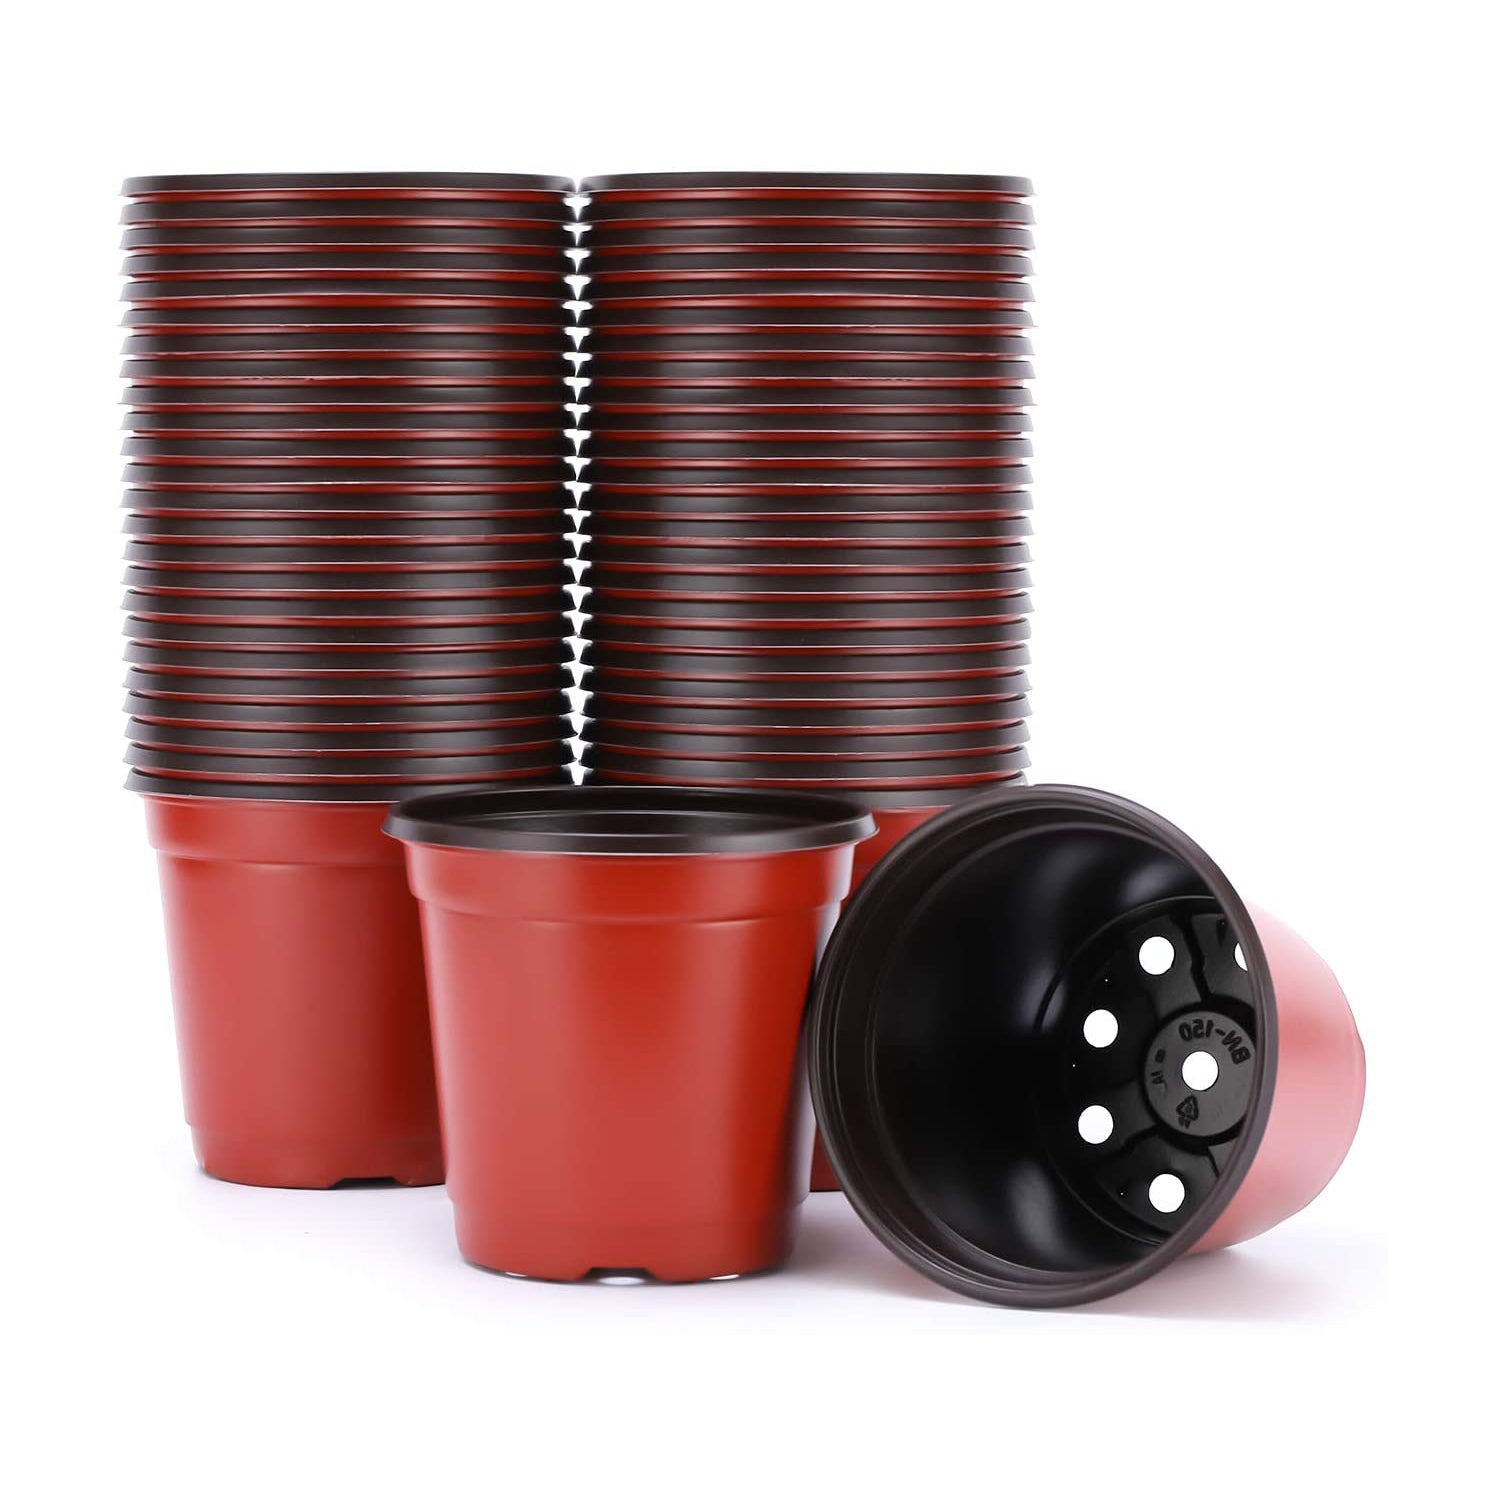 VIVOSUN 50pcs 6 Inch Planter Nursery Pots, Plastic Pots for Flower Seedling - VIVOSUN